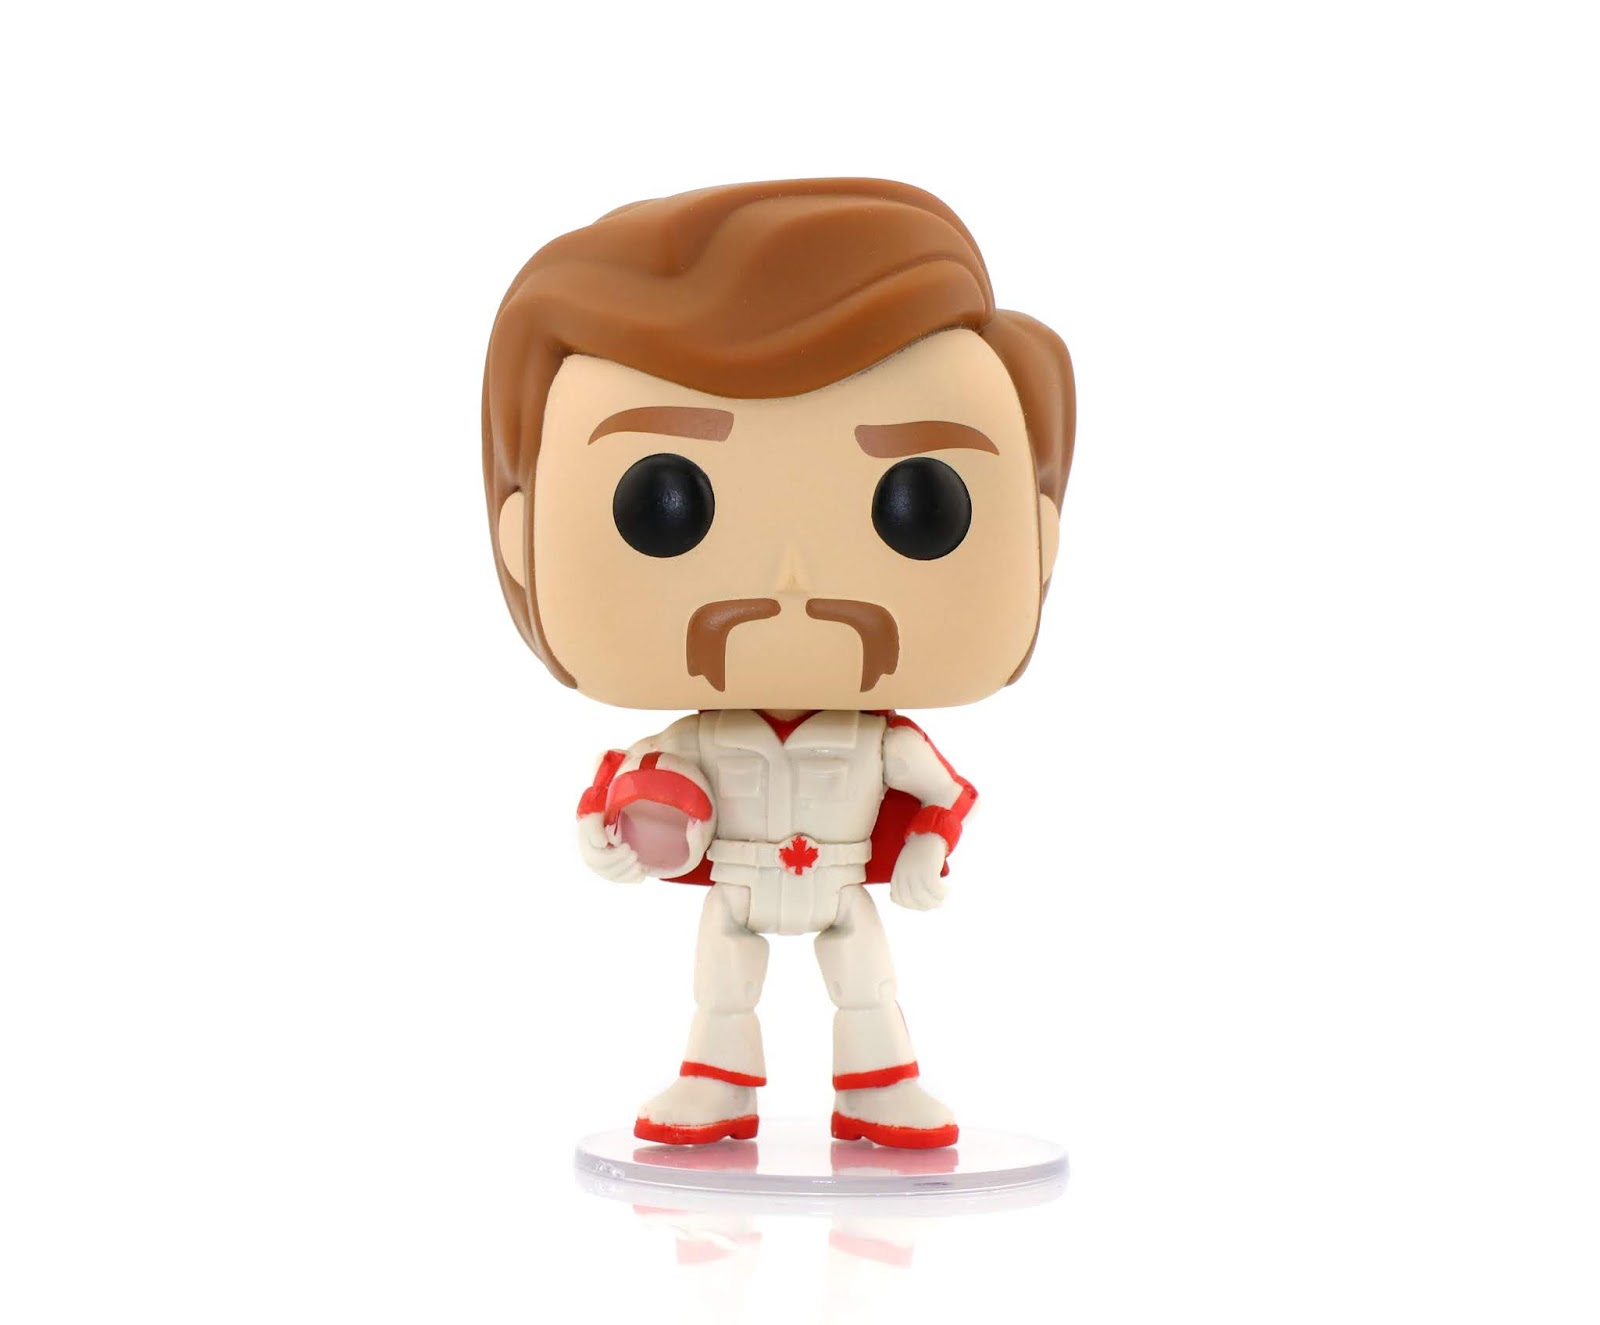 toy story 4 funko pop collection duke caboom